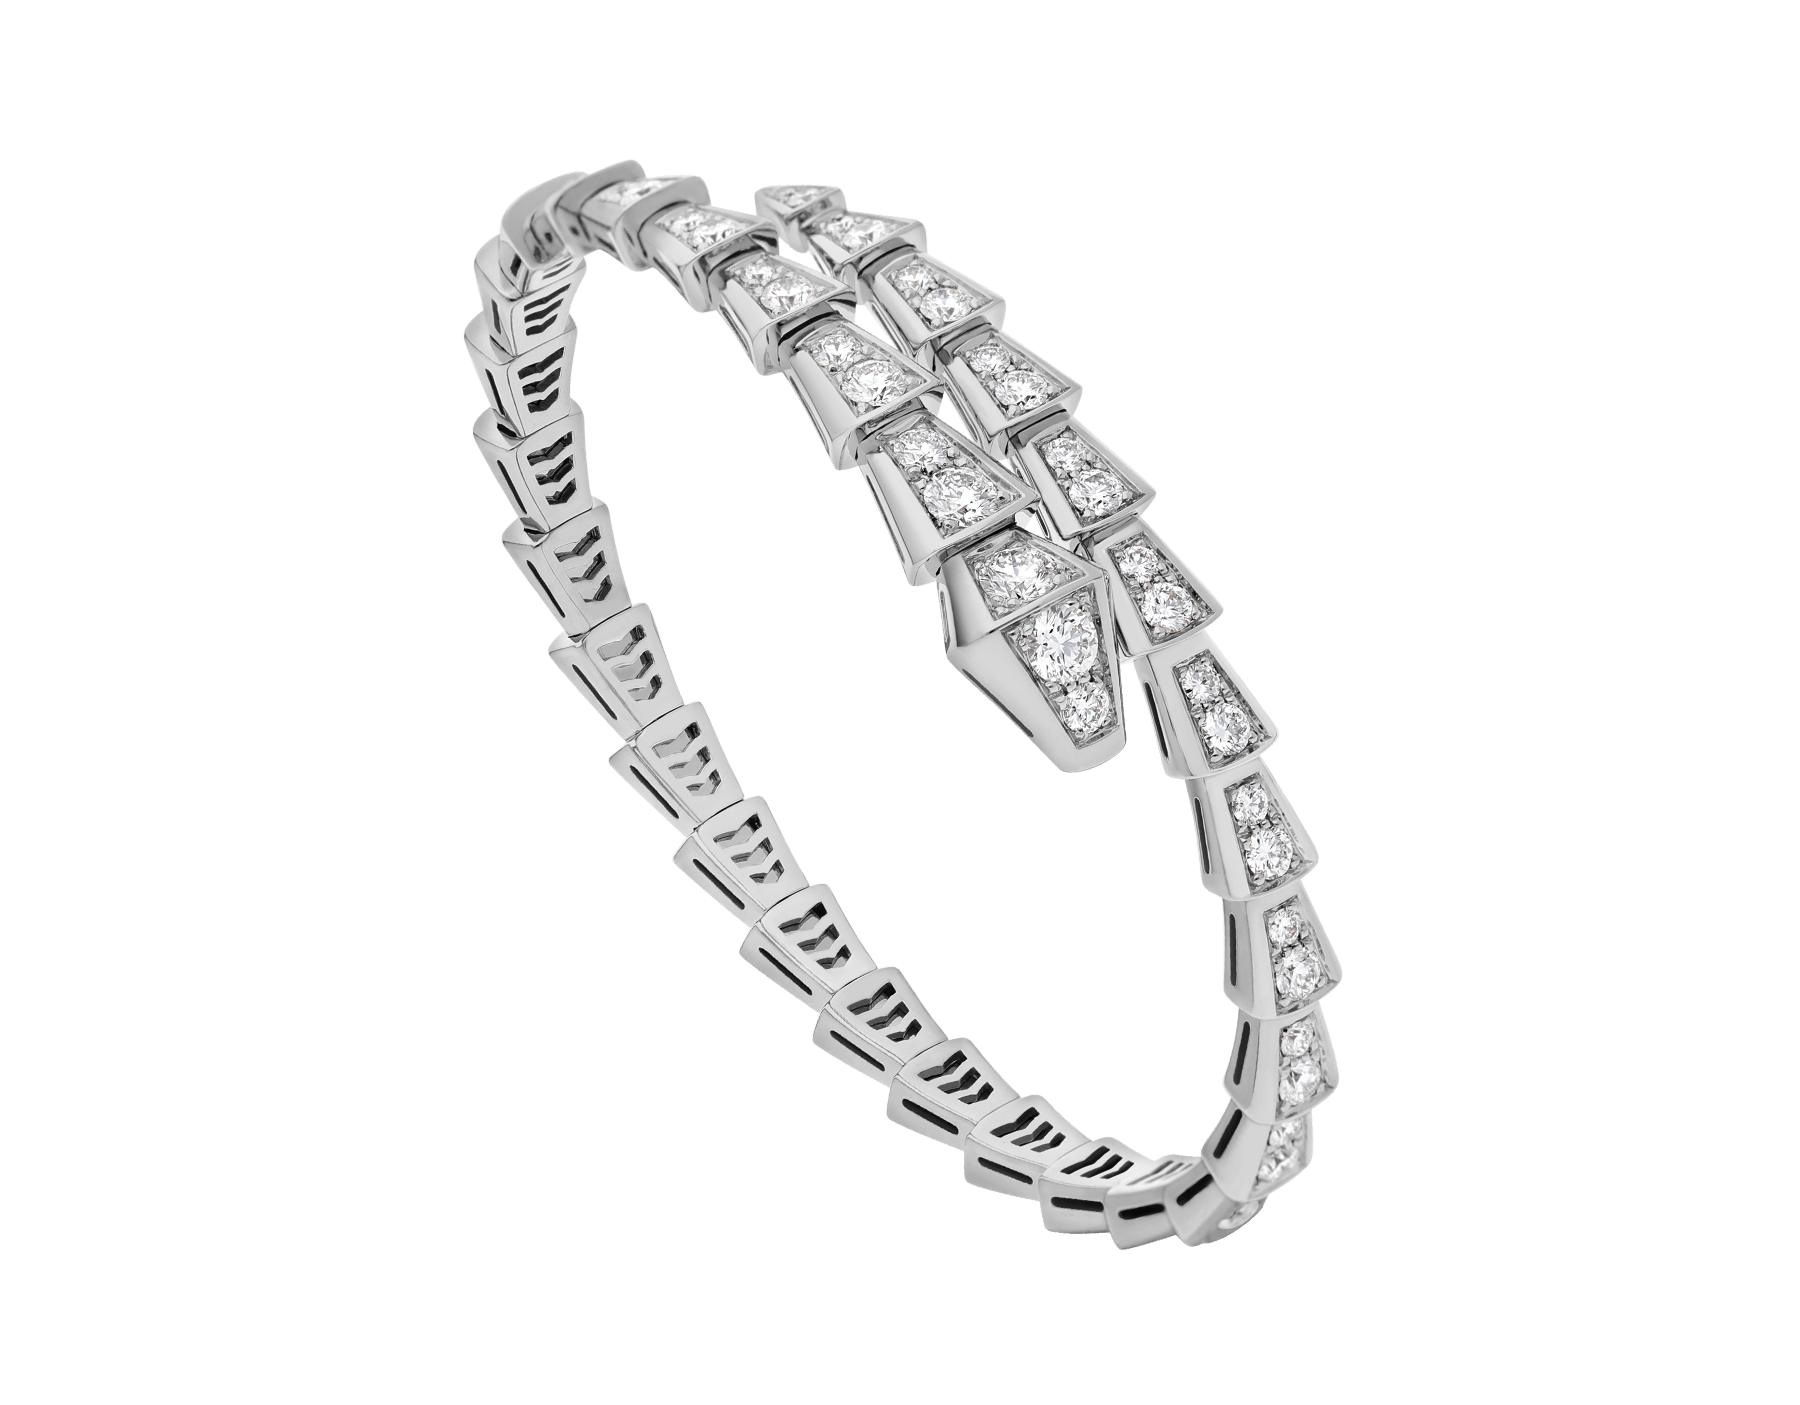 Serpenti Viper one-coil slim bracelet in 18 kt white gold, set with full pavé diamonds. BR857492 image 1